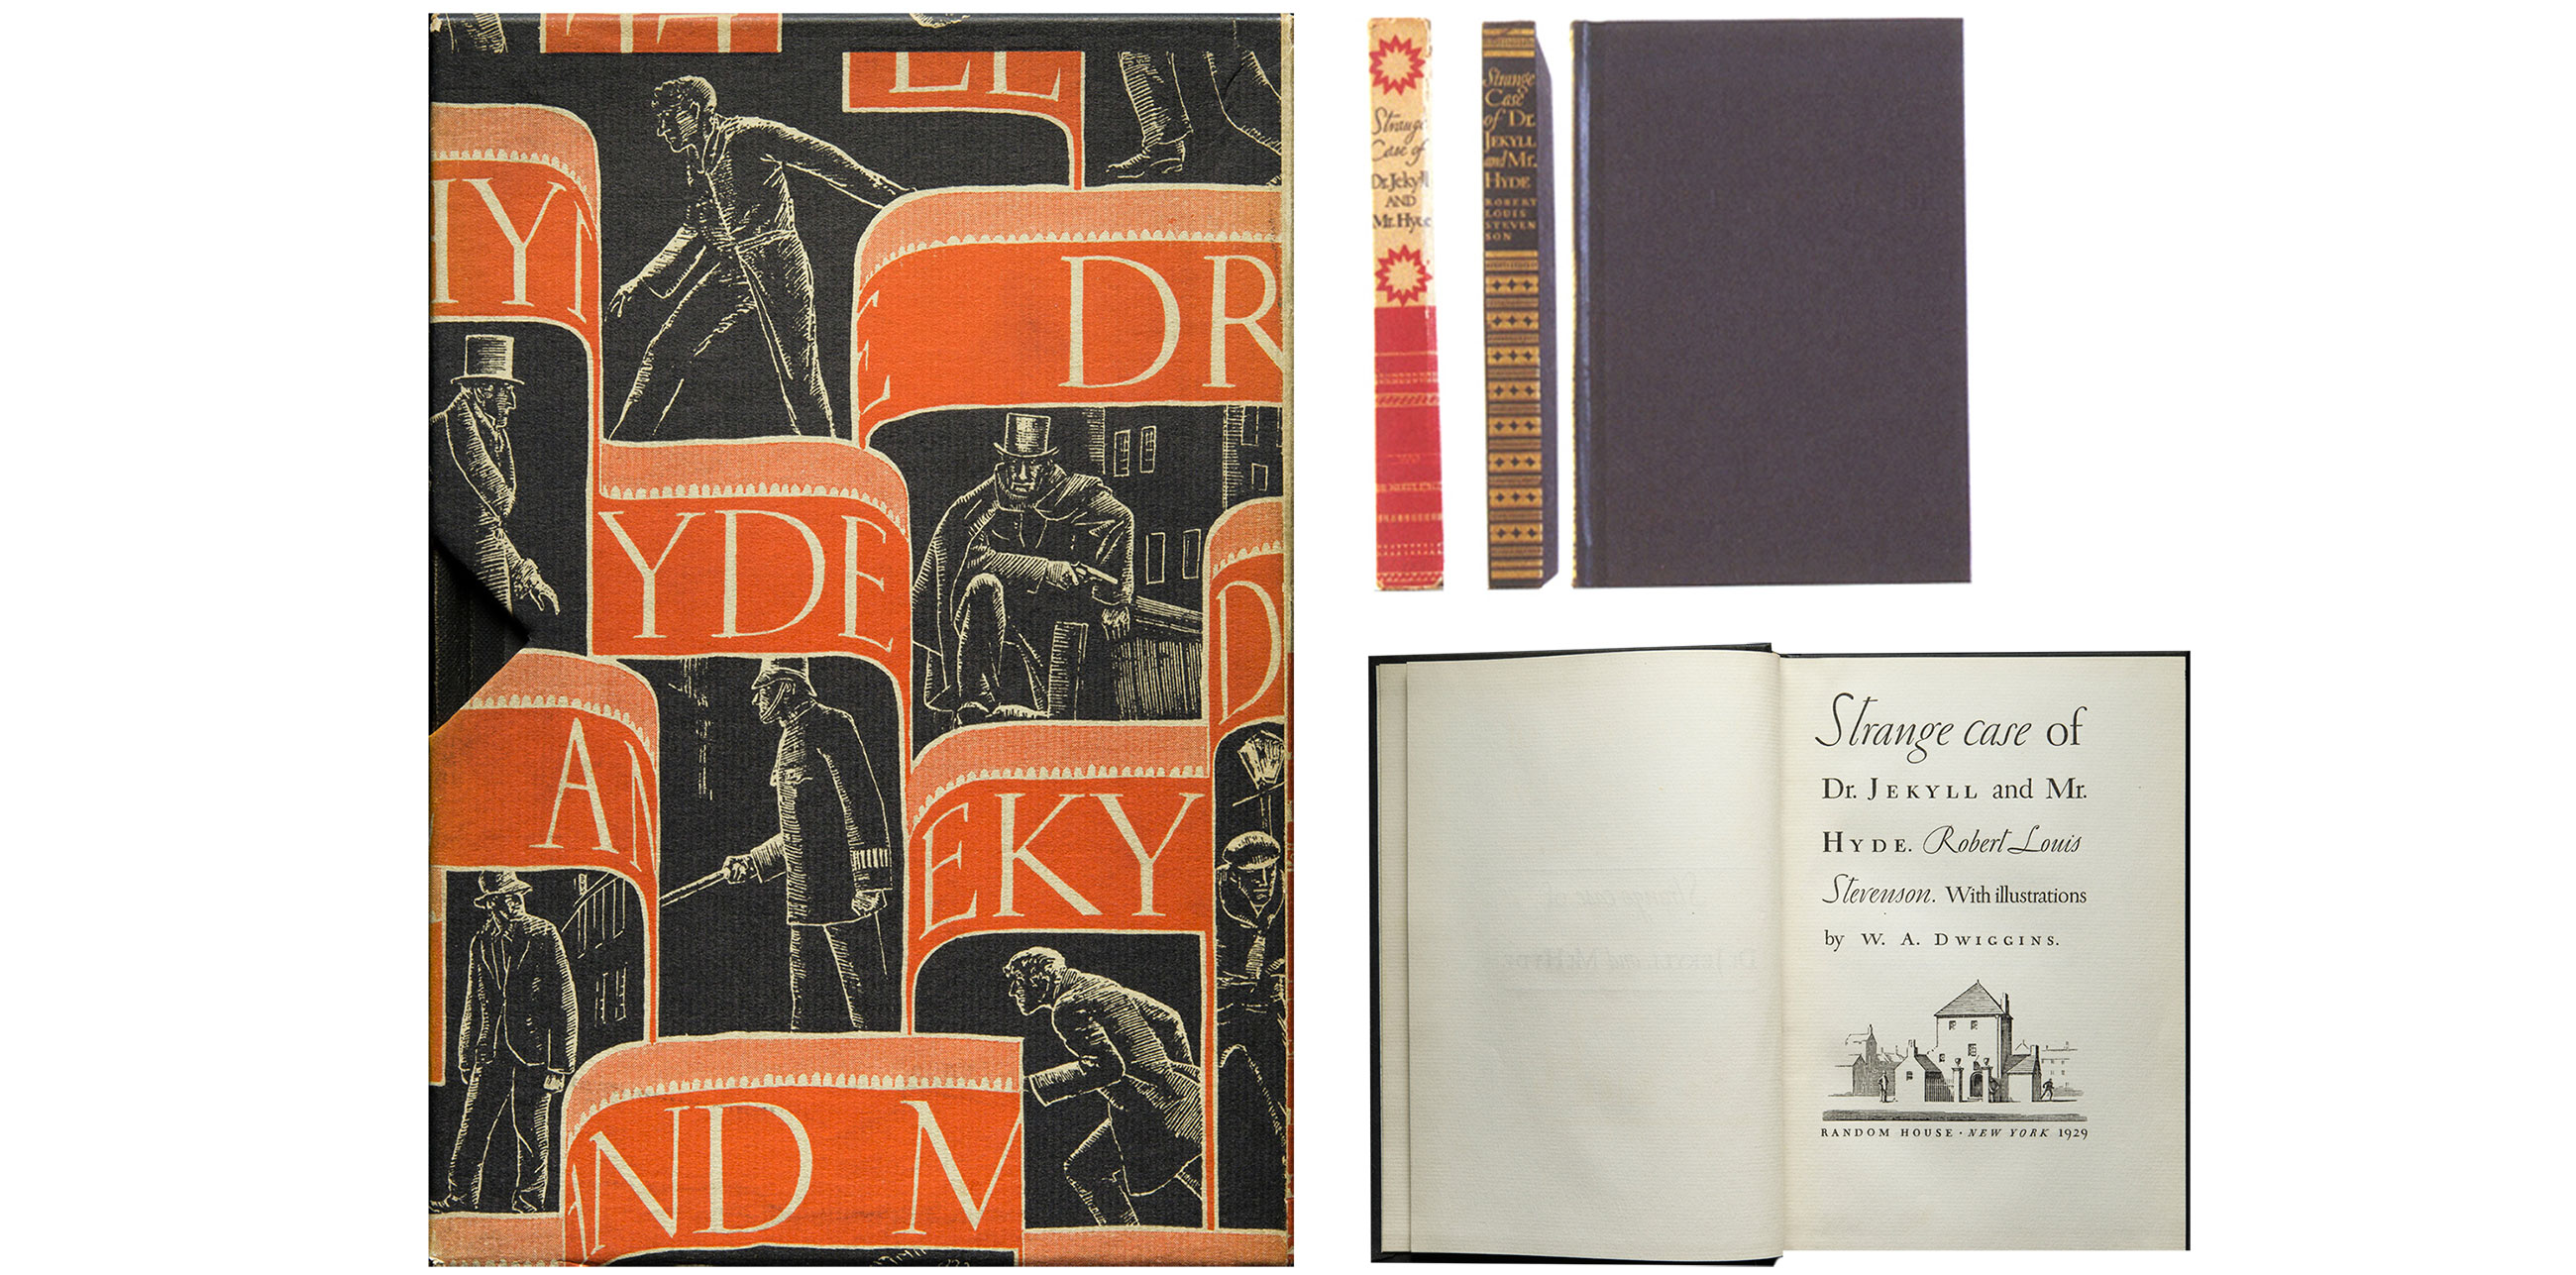 William-Addison-Dwiggins-Strange Case of Dr. Jekyll and Mr. Hyde-1929